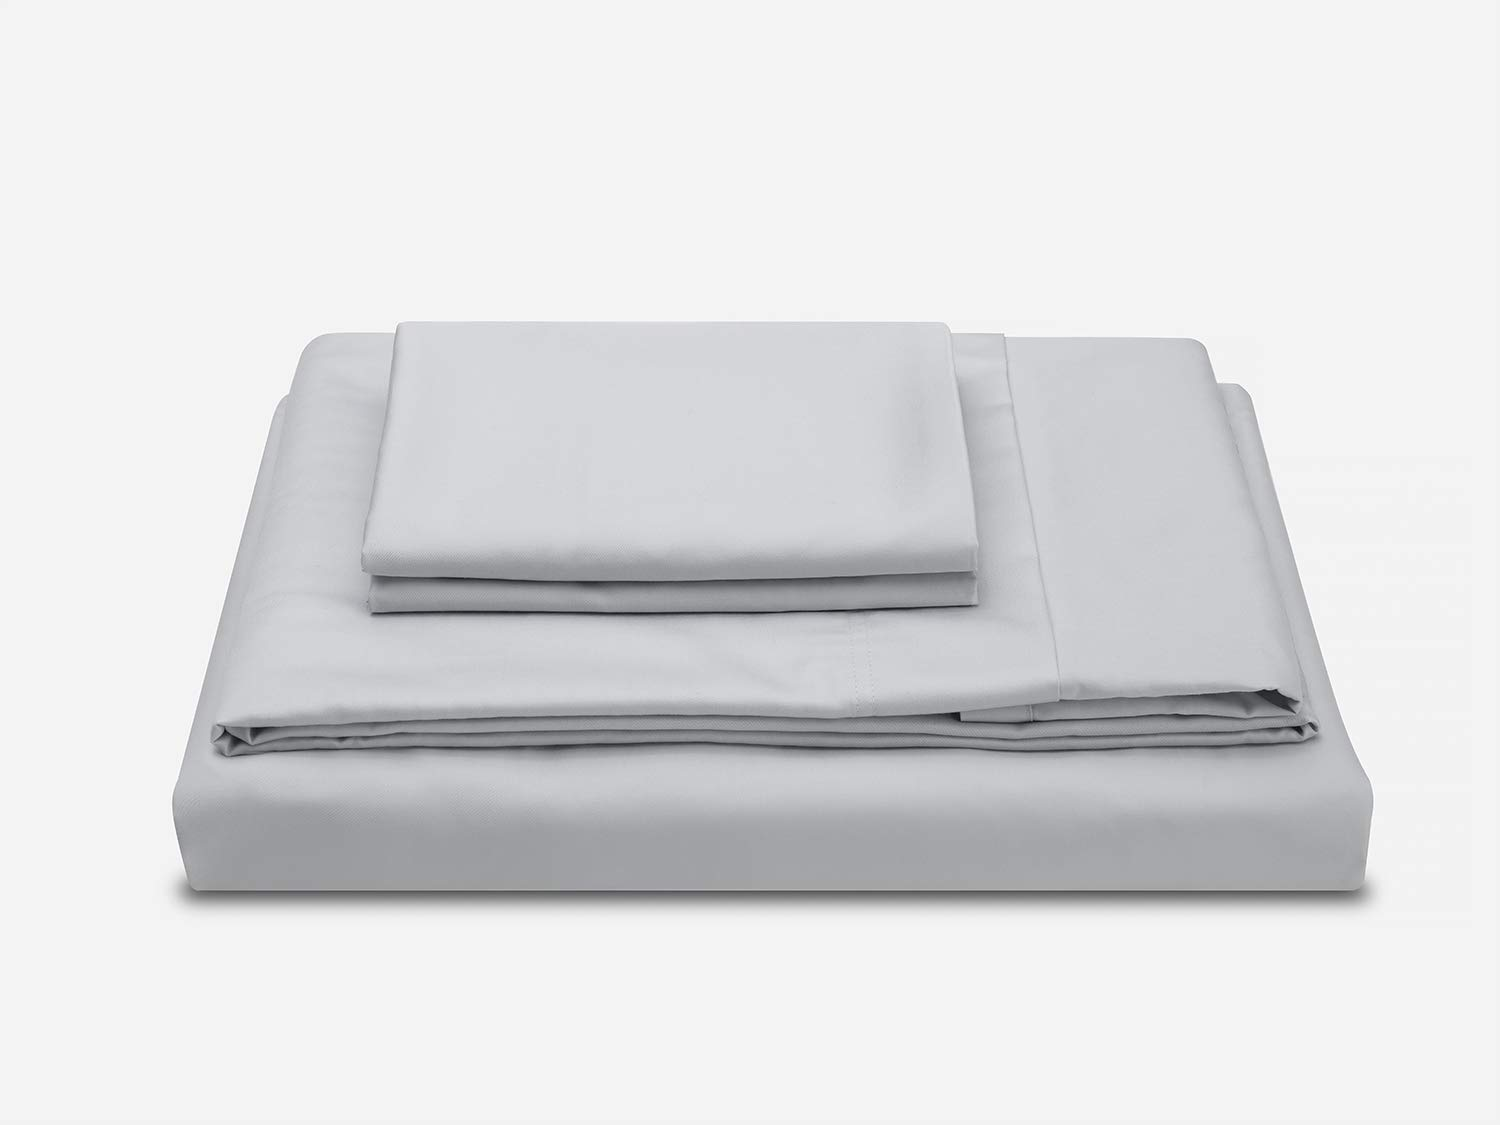 Cloudgrey Full Molecule Bed Sheets with Cooling Cotton & Tencel Lyocell fibers Construction, Super Durable and Ultra Lustrous Silk Satin Feel, Deep Pocket Sheet Set (CloudGrey, Twin XL)